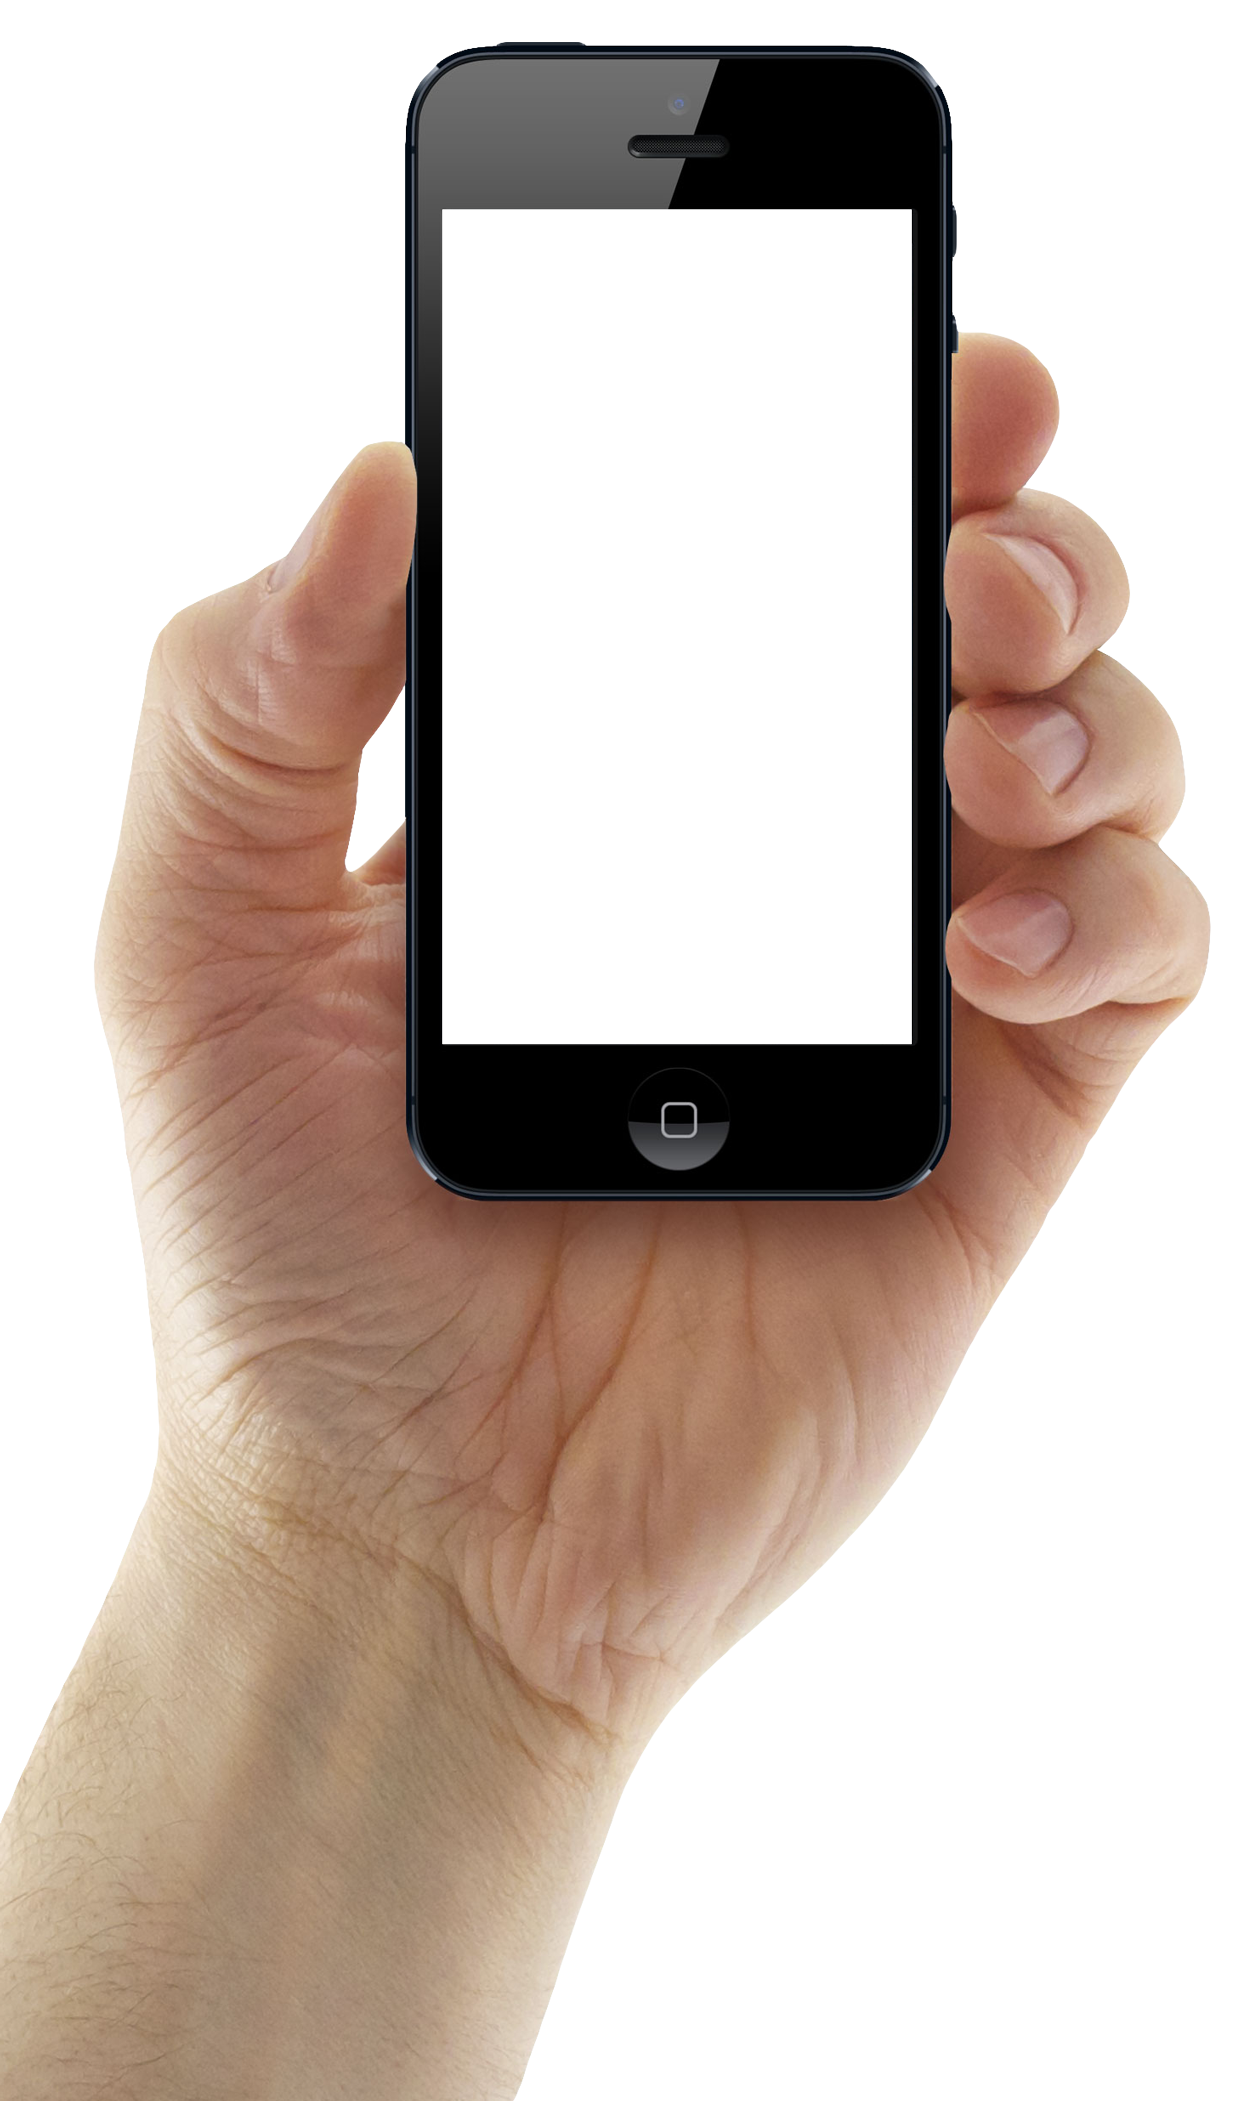 Holding iphone mobile png. Hand clipart smartphone